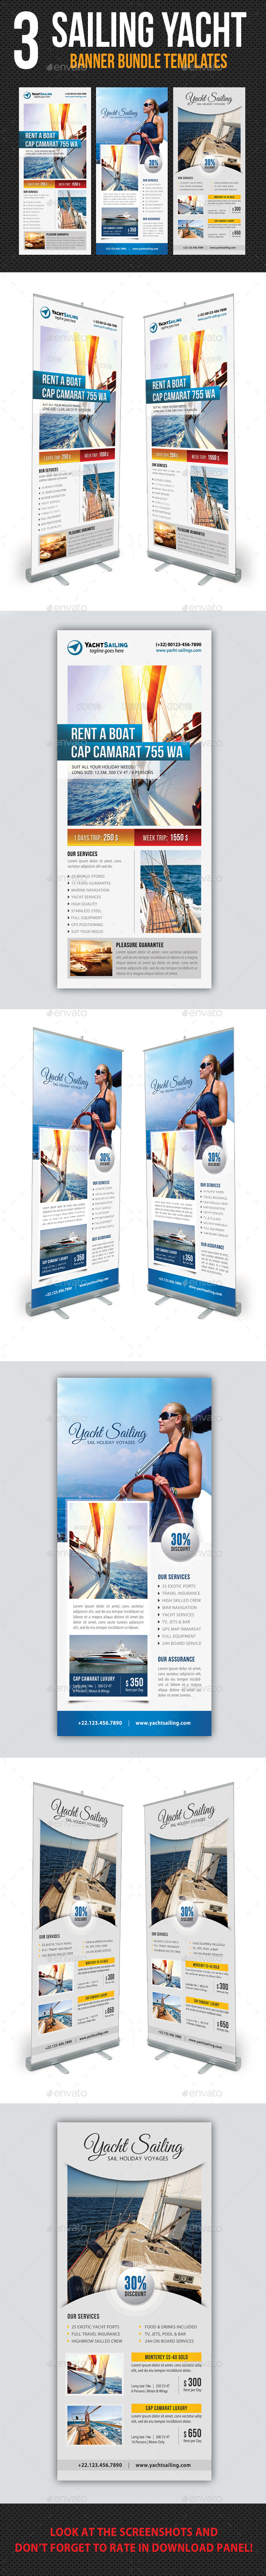 3 in 1 Sailing Yacht Banner Bundle 03 - Signage Print Templates